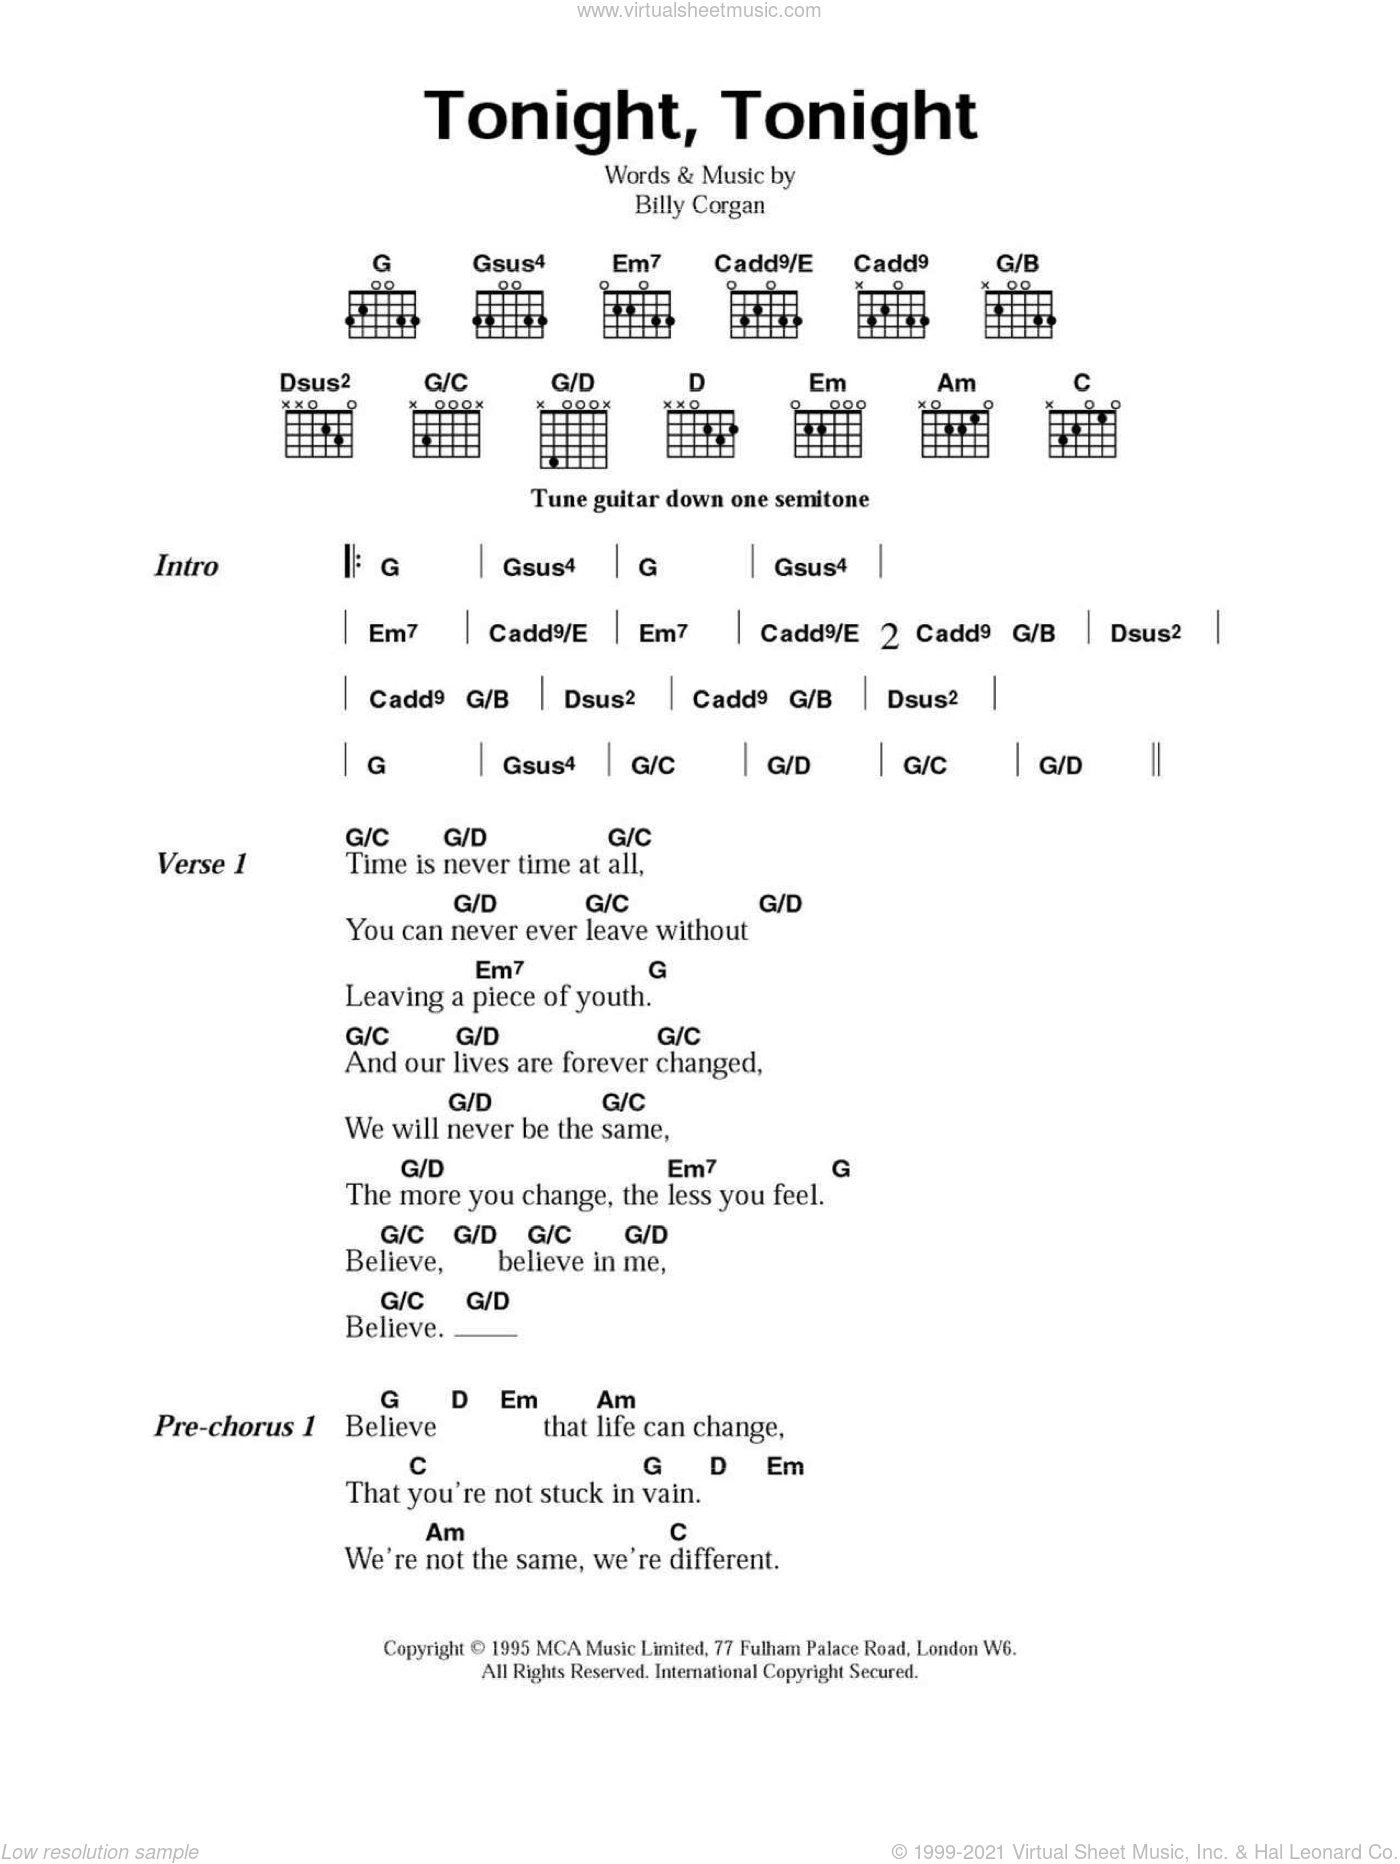 Tonight, Tonight sheet music for guitar (chords) by Billy Corgan